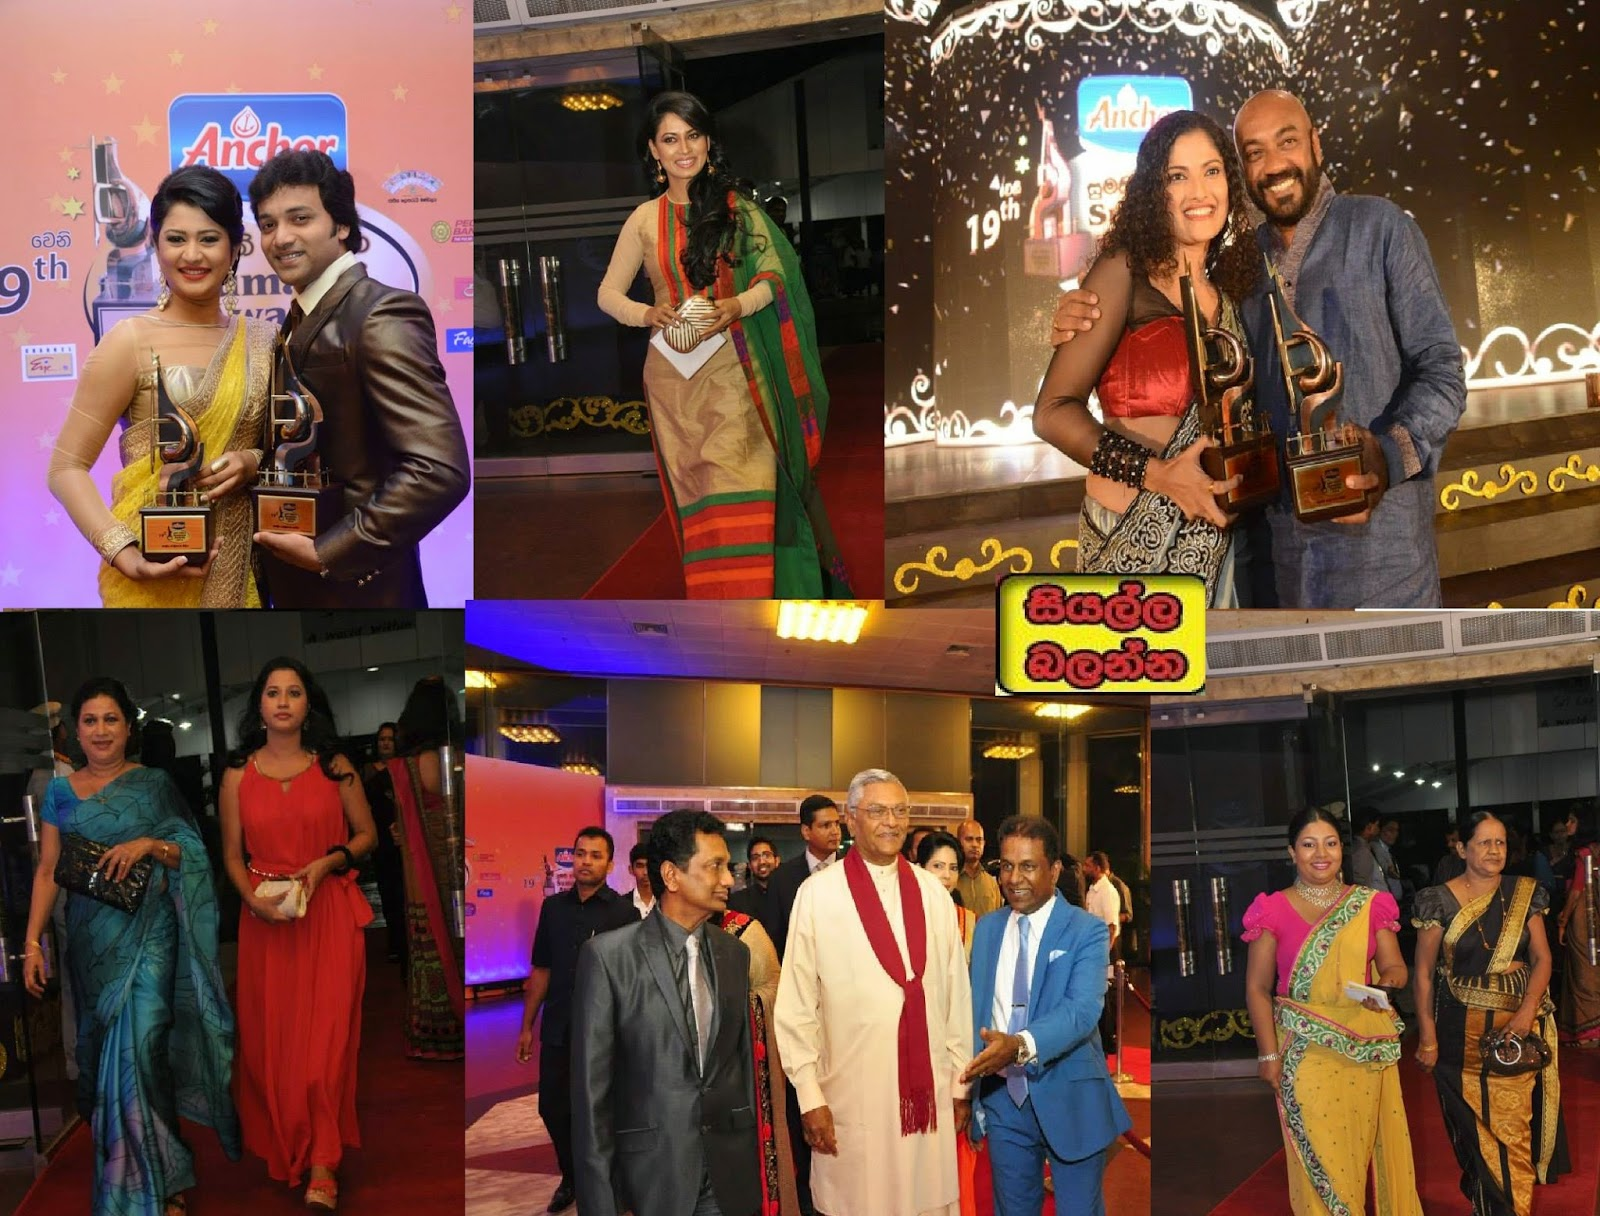 http://picture.gossiplankahotnews.com/2014/11/19th-anchor-sumathi-awards.html